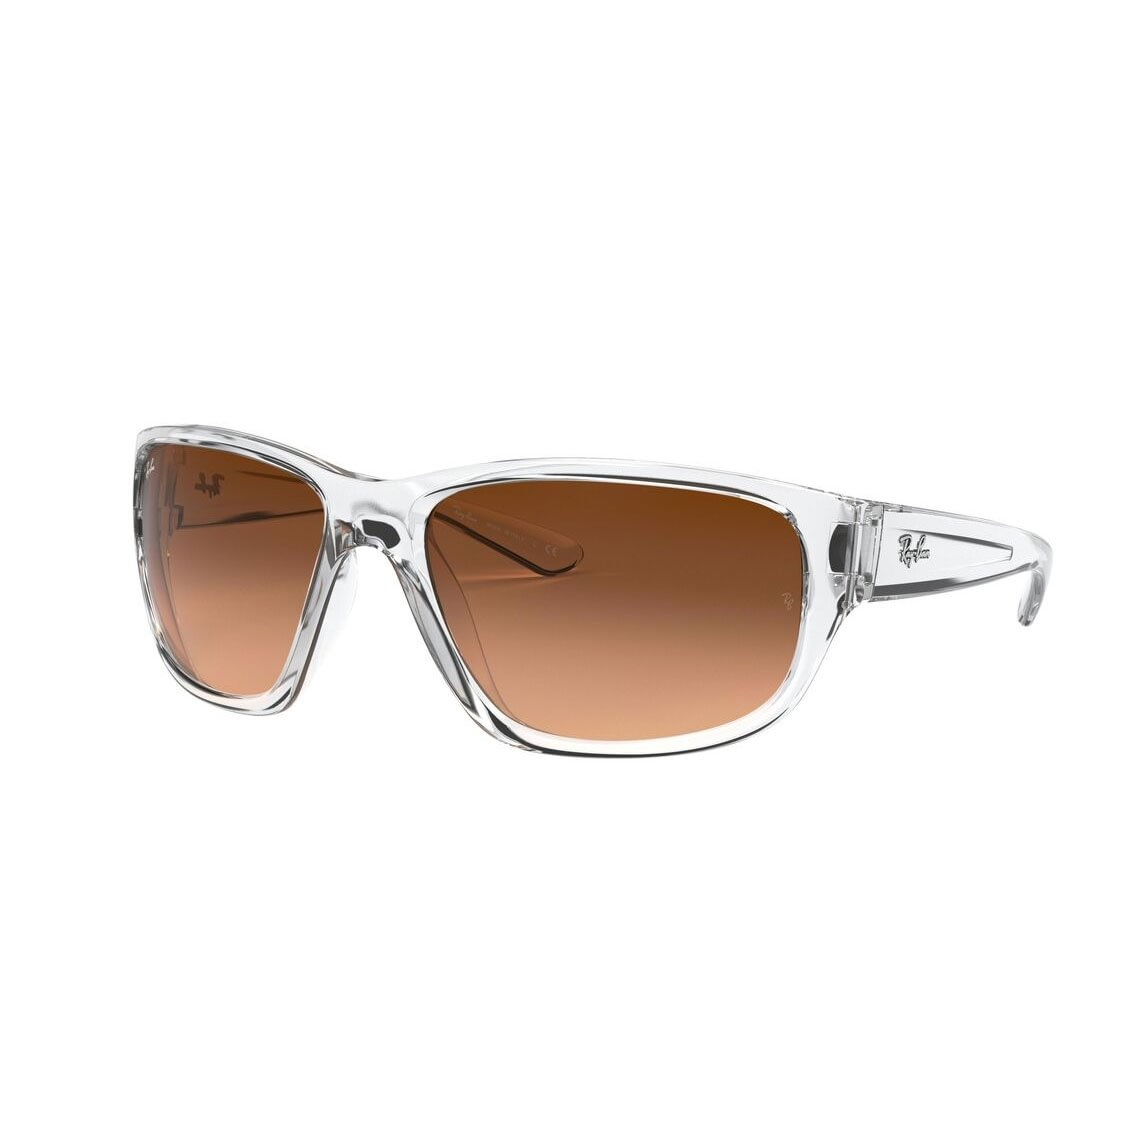 Ray-Ban RB4300 6325A5 6318